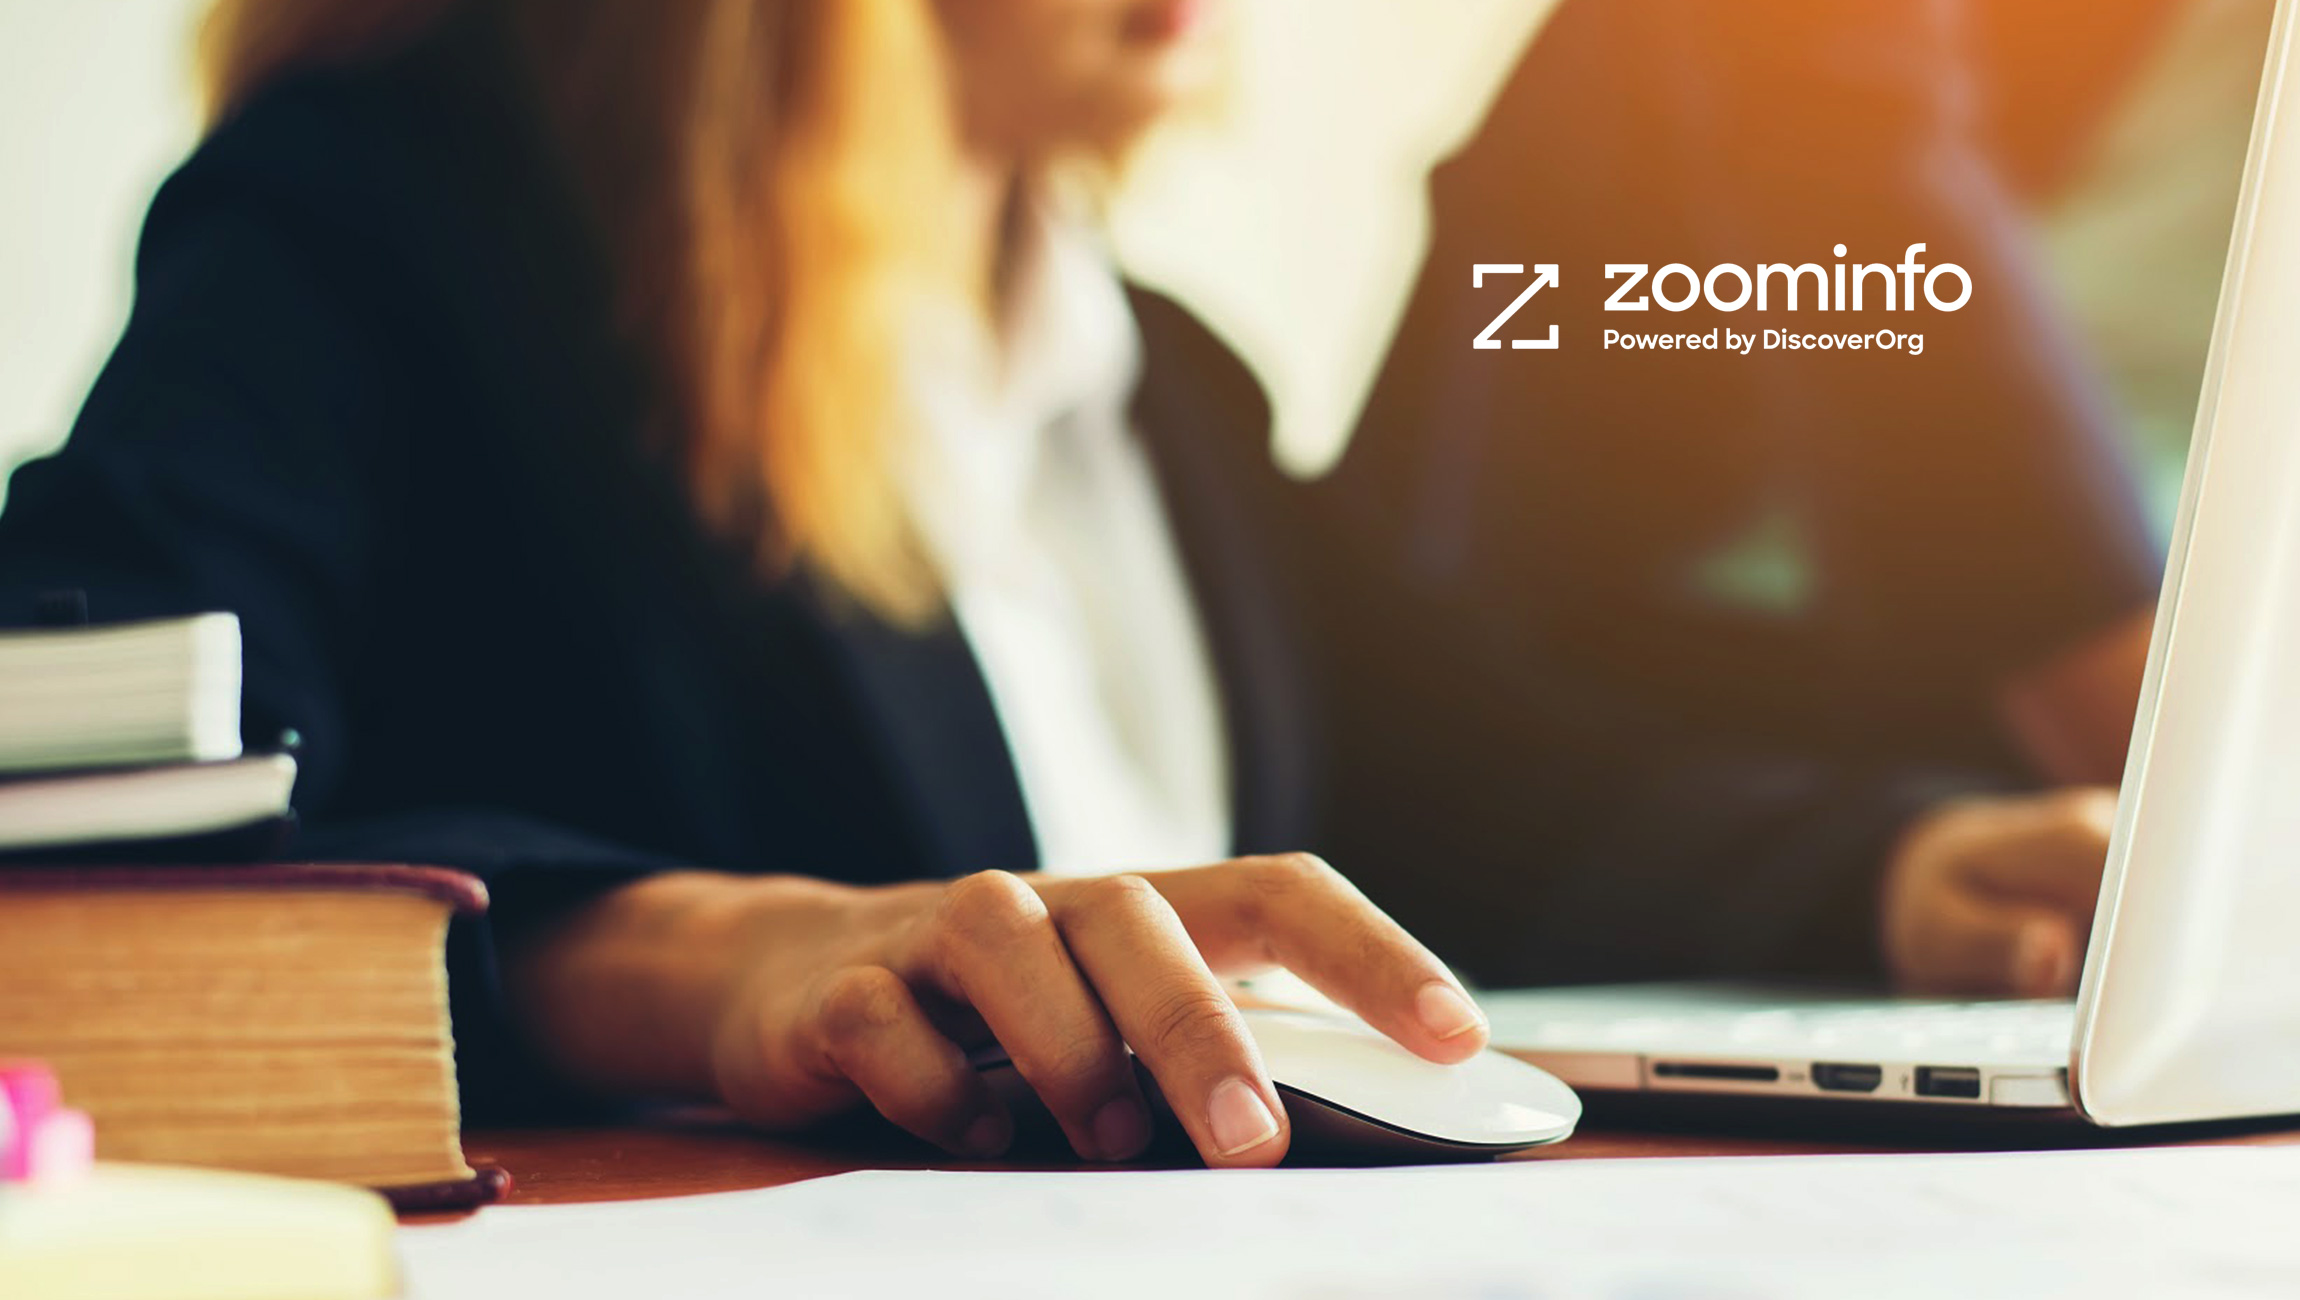 ZoomInfo Powered by DiscoverOrg Announces New Sales and Marketing Certifications from ZoomInfo University